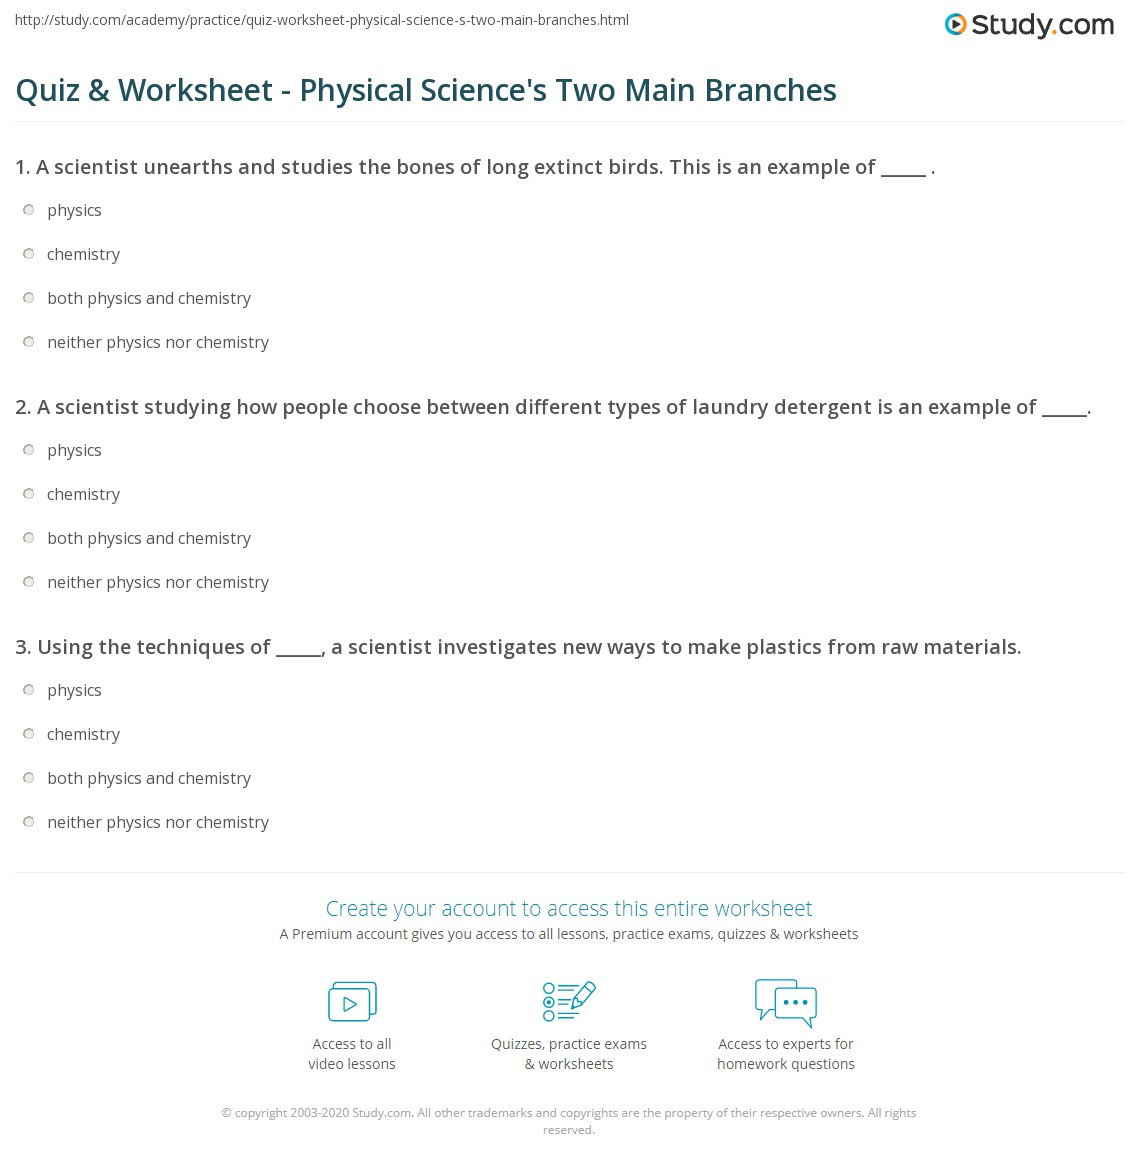 Quiz & Worksheet - Physical Science's Two Main Branches | Study.com